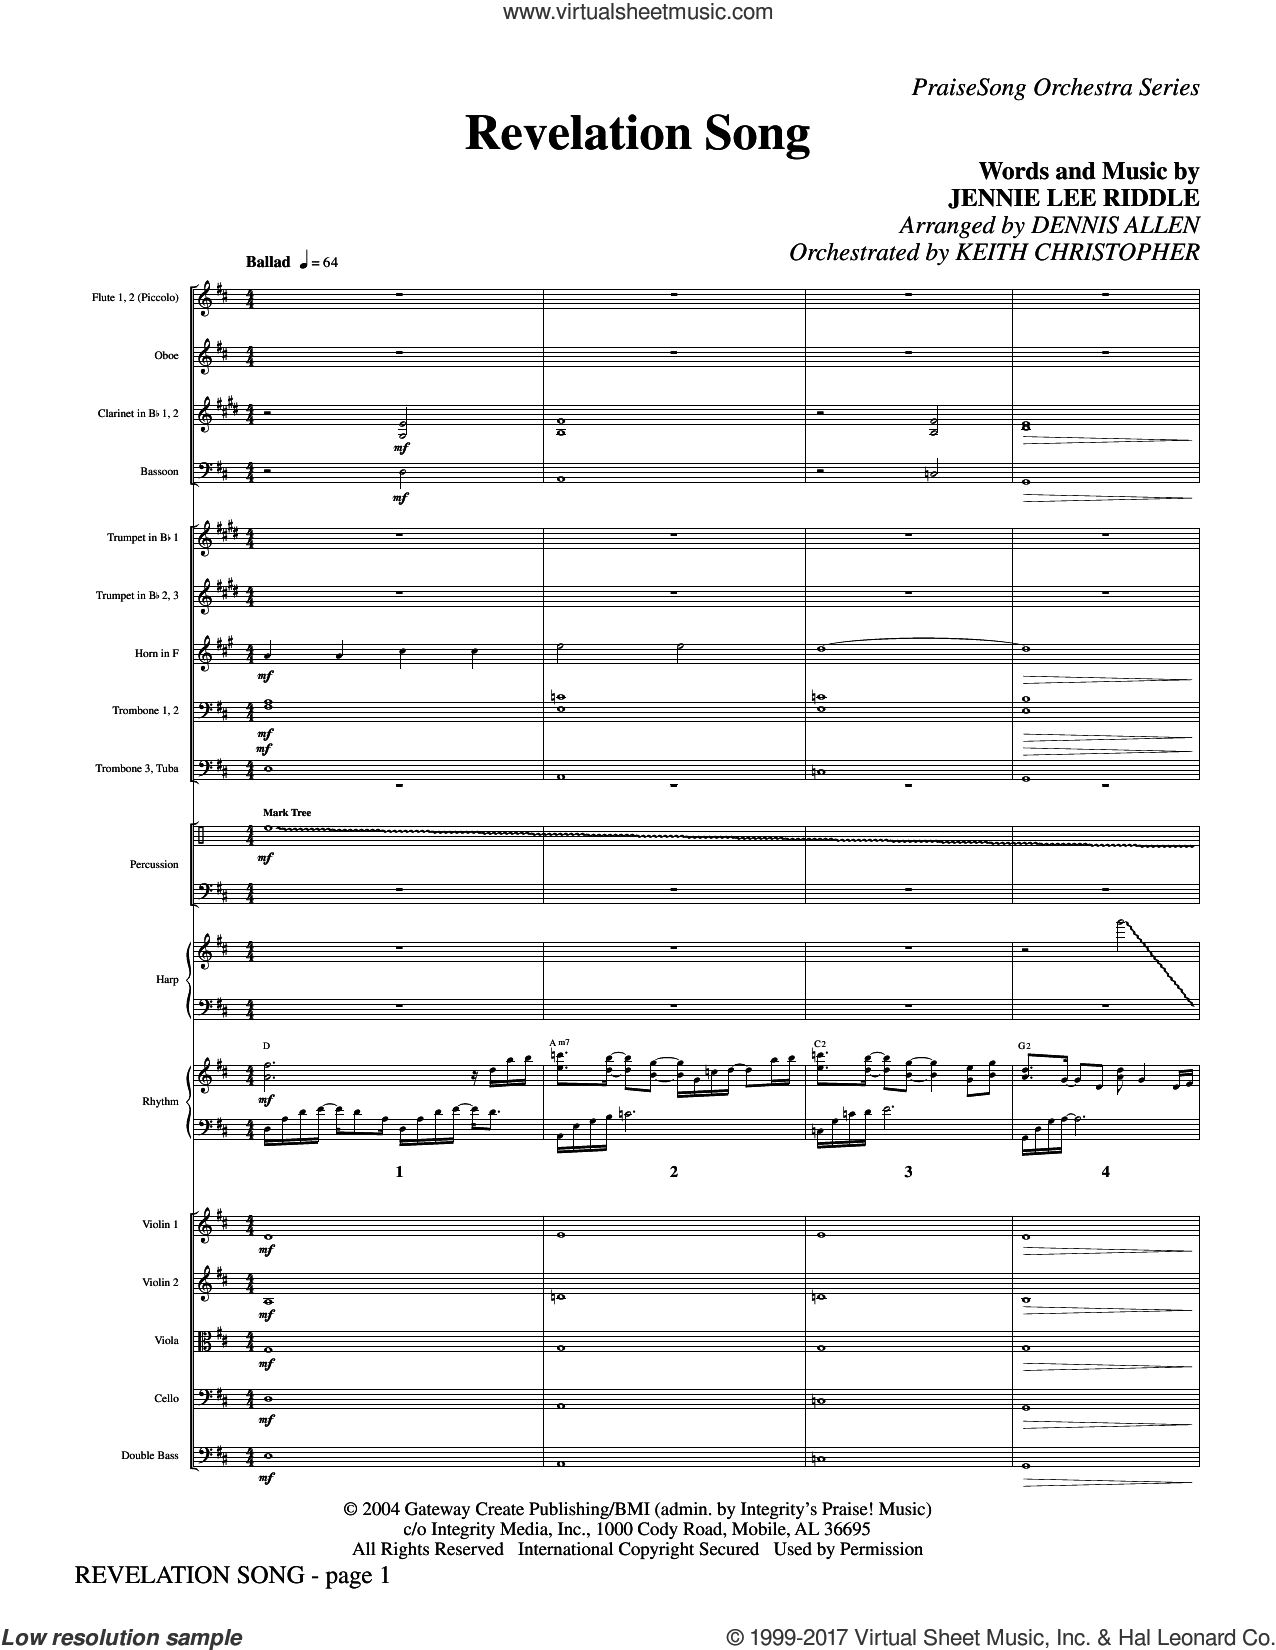 Revelation Song (complete set of parts) sheet music for orchestra/band (Orchestra) by Jennie Lee Riddle, Dennis Allen and Keith Christopher, intermediate skill level